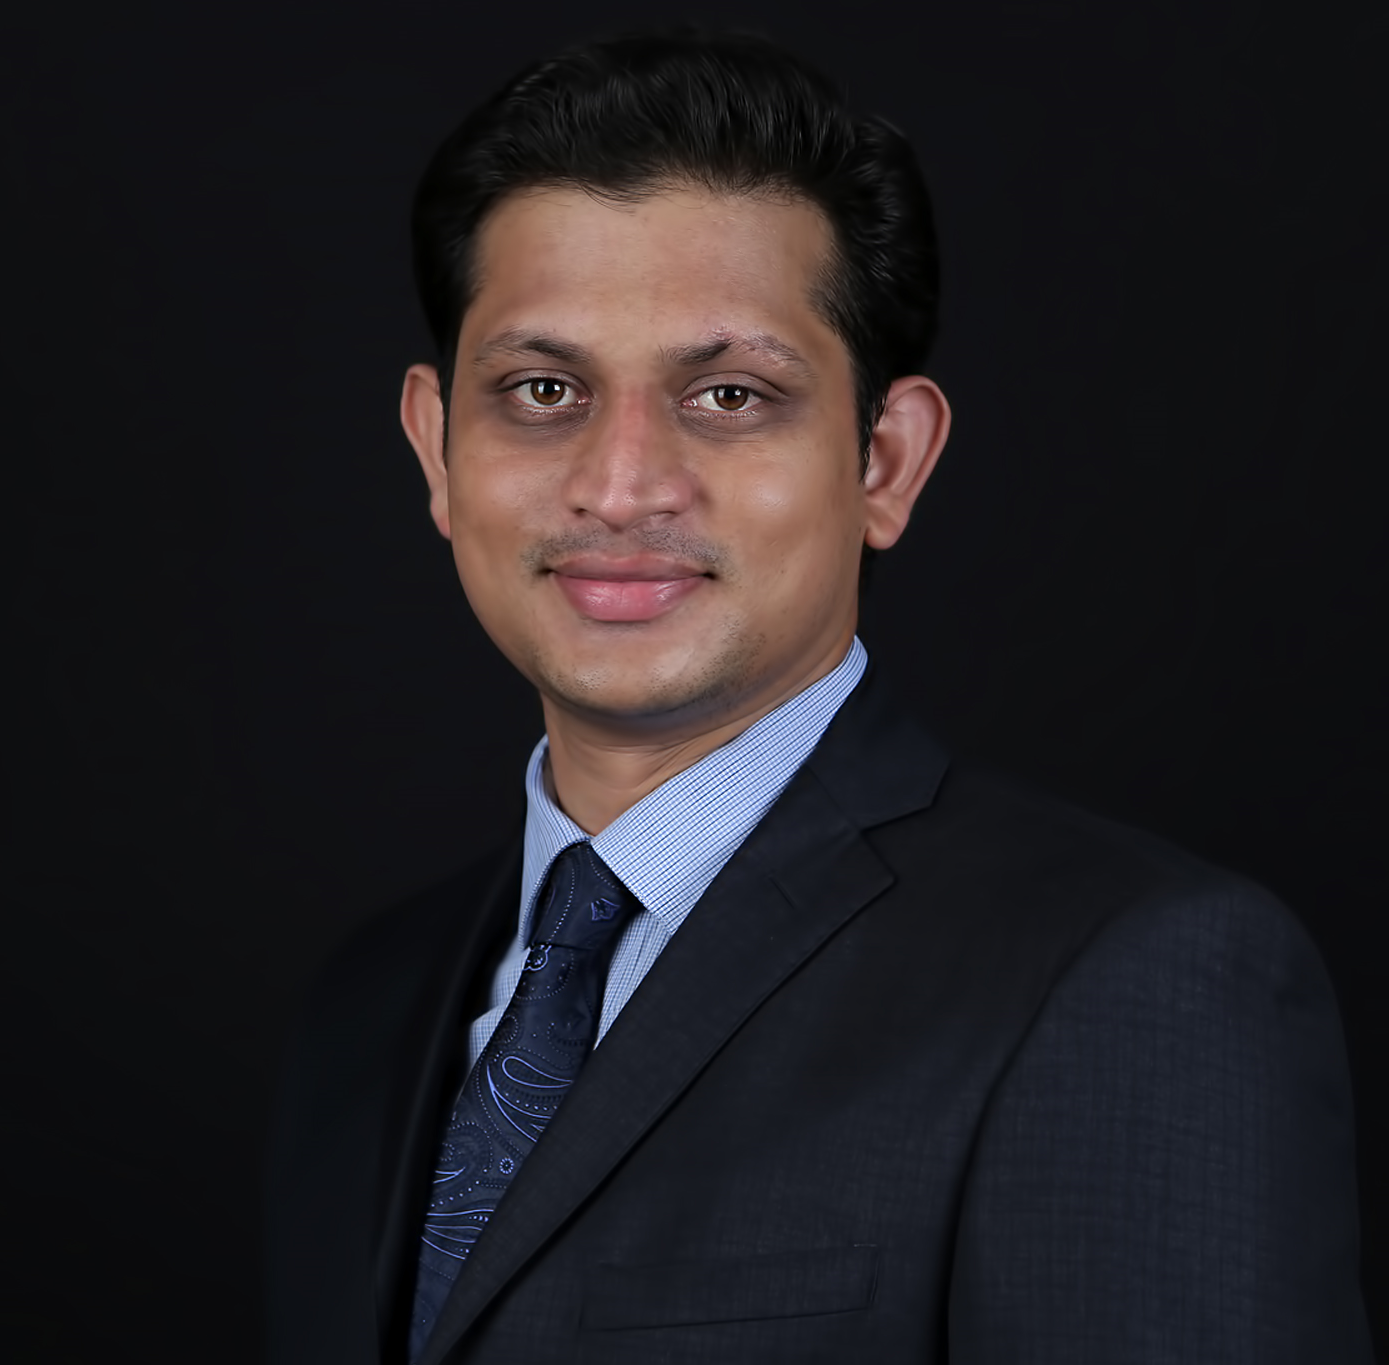 Dr Pramod Krishnappa, Urologist in Bangalore, Andrologist and Prosthetic Urologist